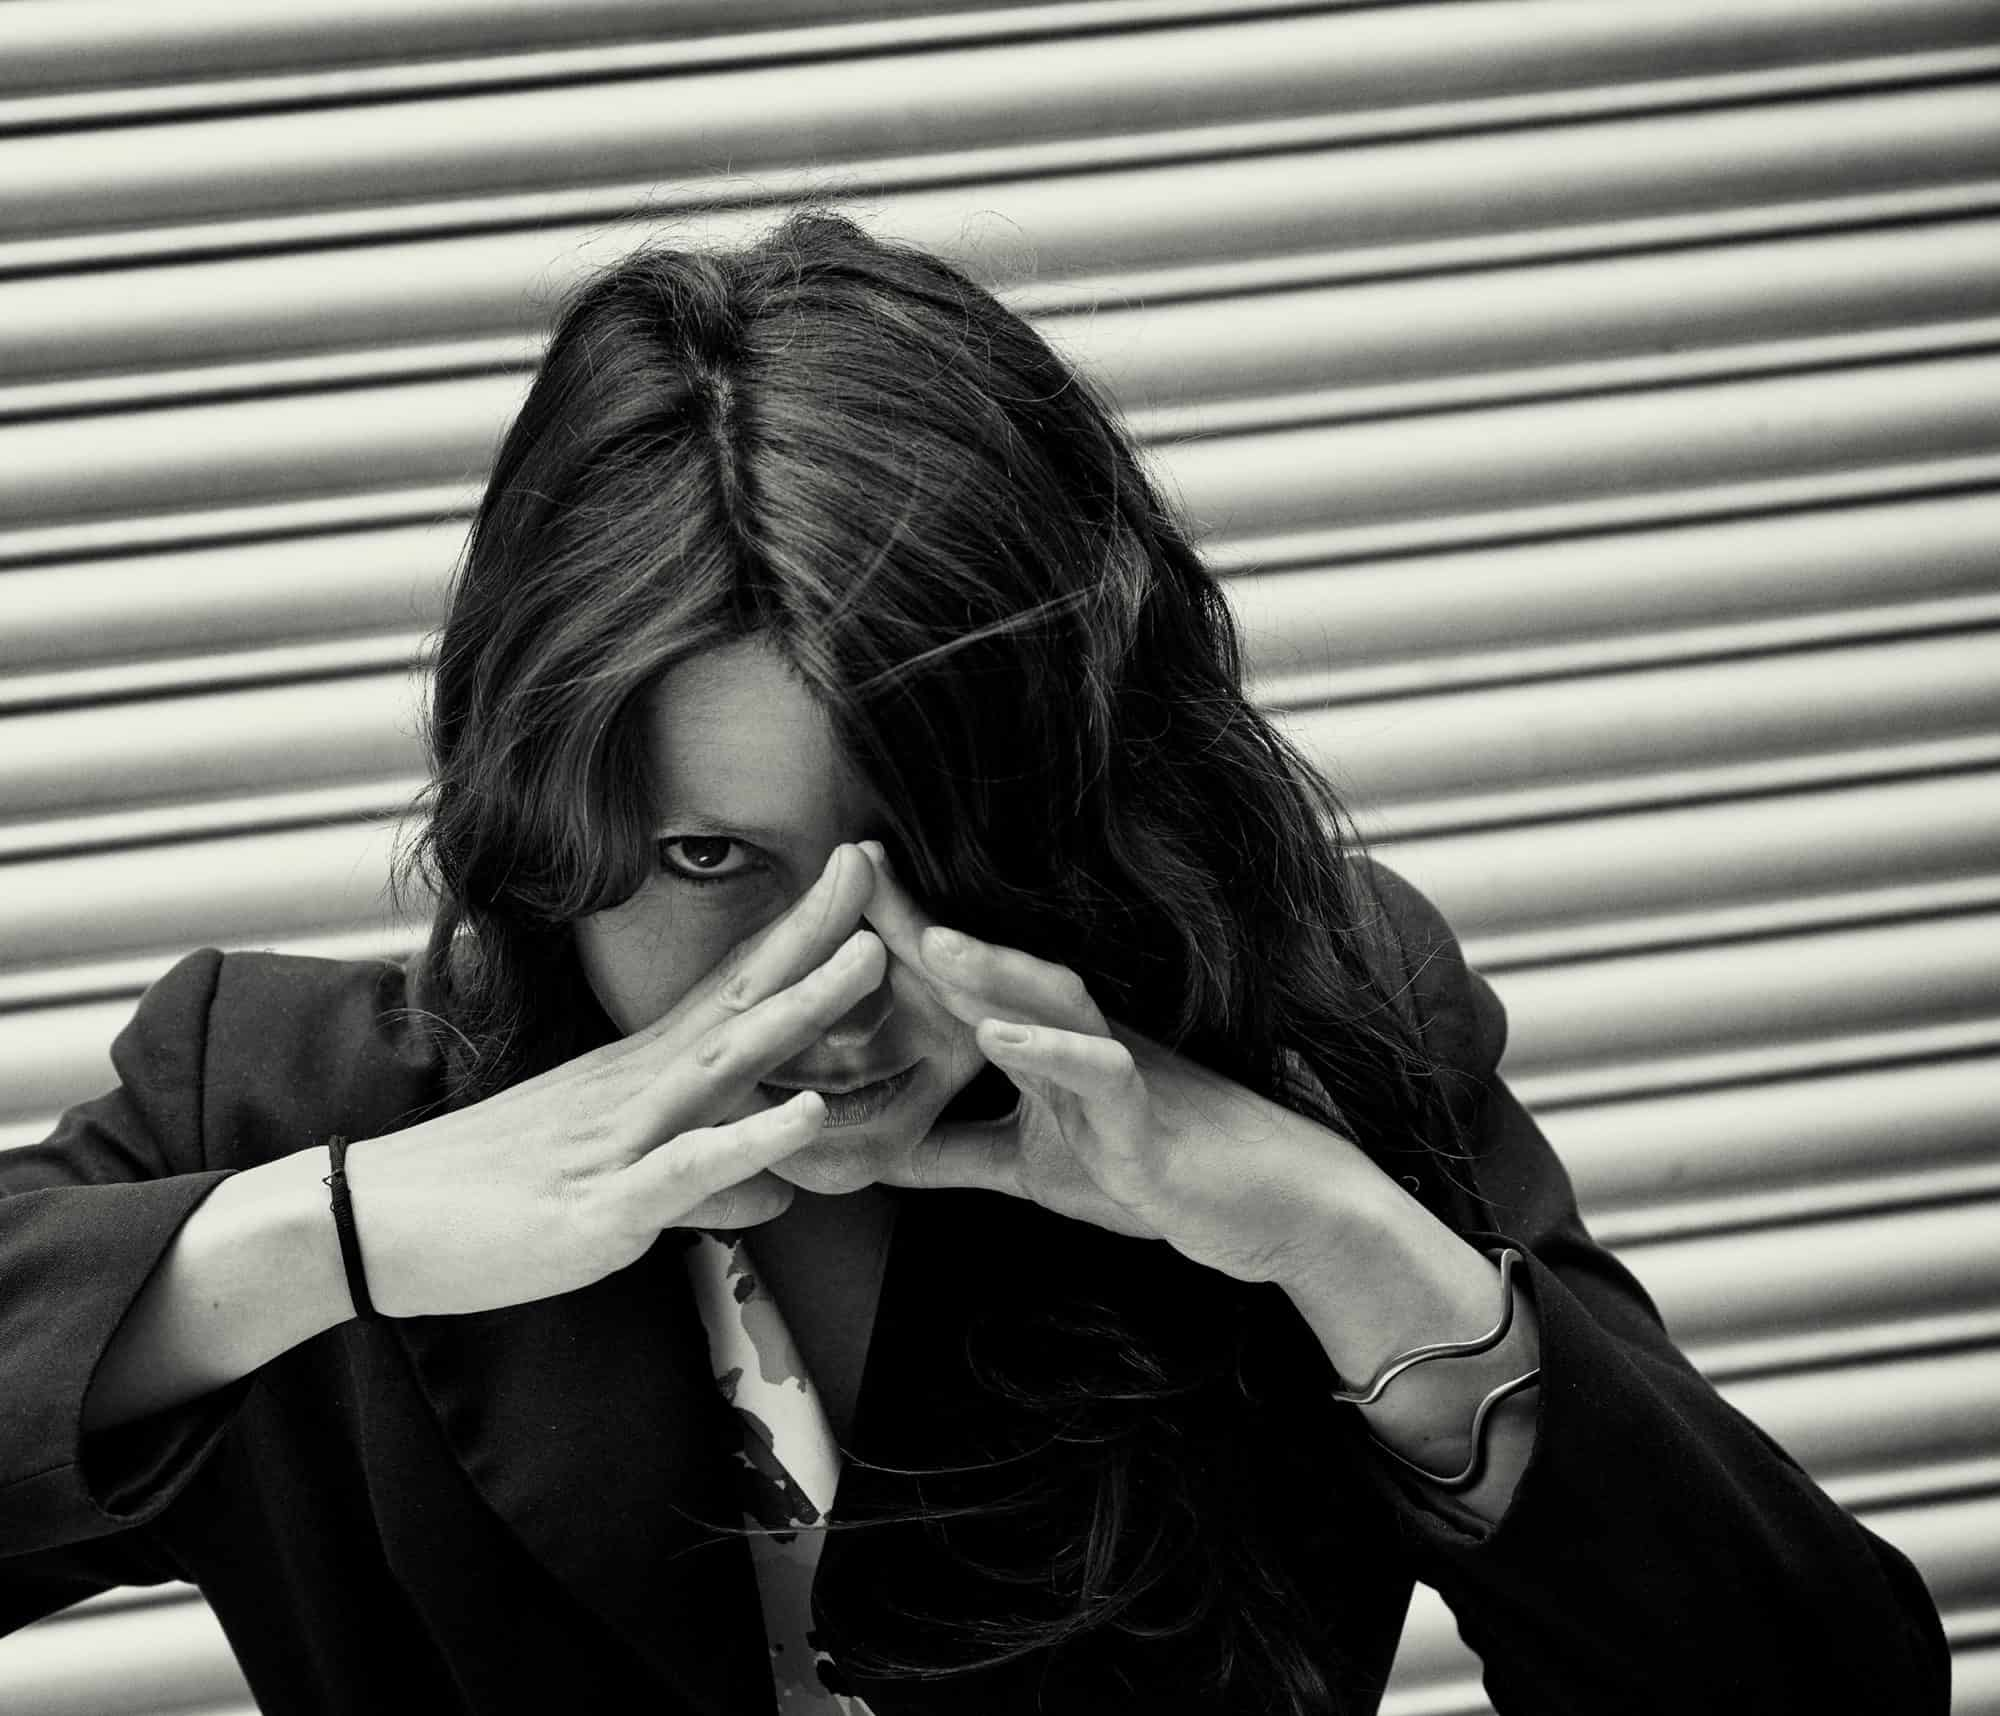 """Portrait of stylish woman in-front of closed shutters. She is making a triangle shape with her hands. Wearing a black jacket."